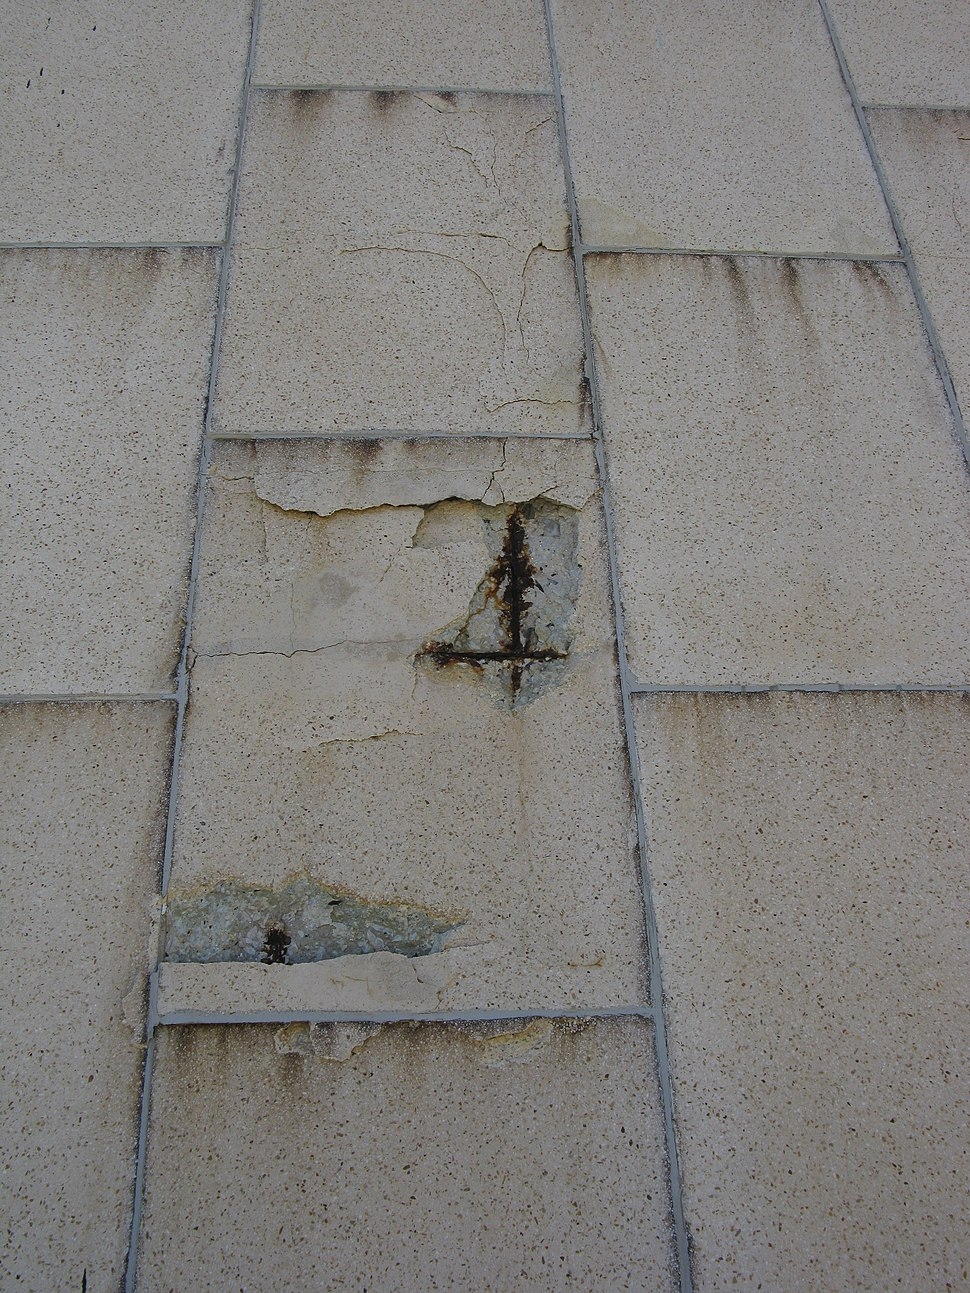 Concrete wall cracking as its steel reinforcing cracks and swells 9061v